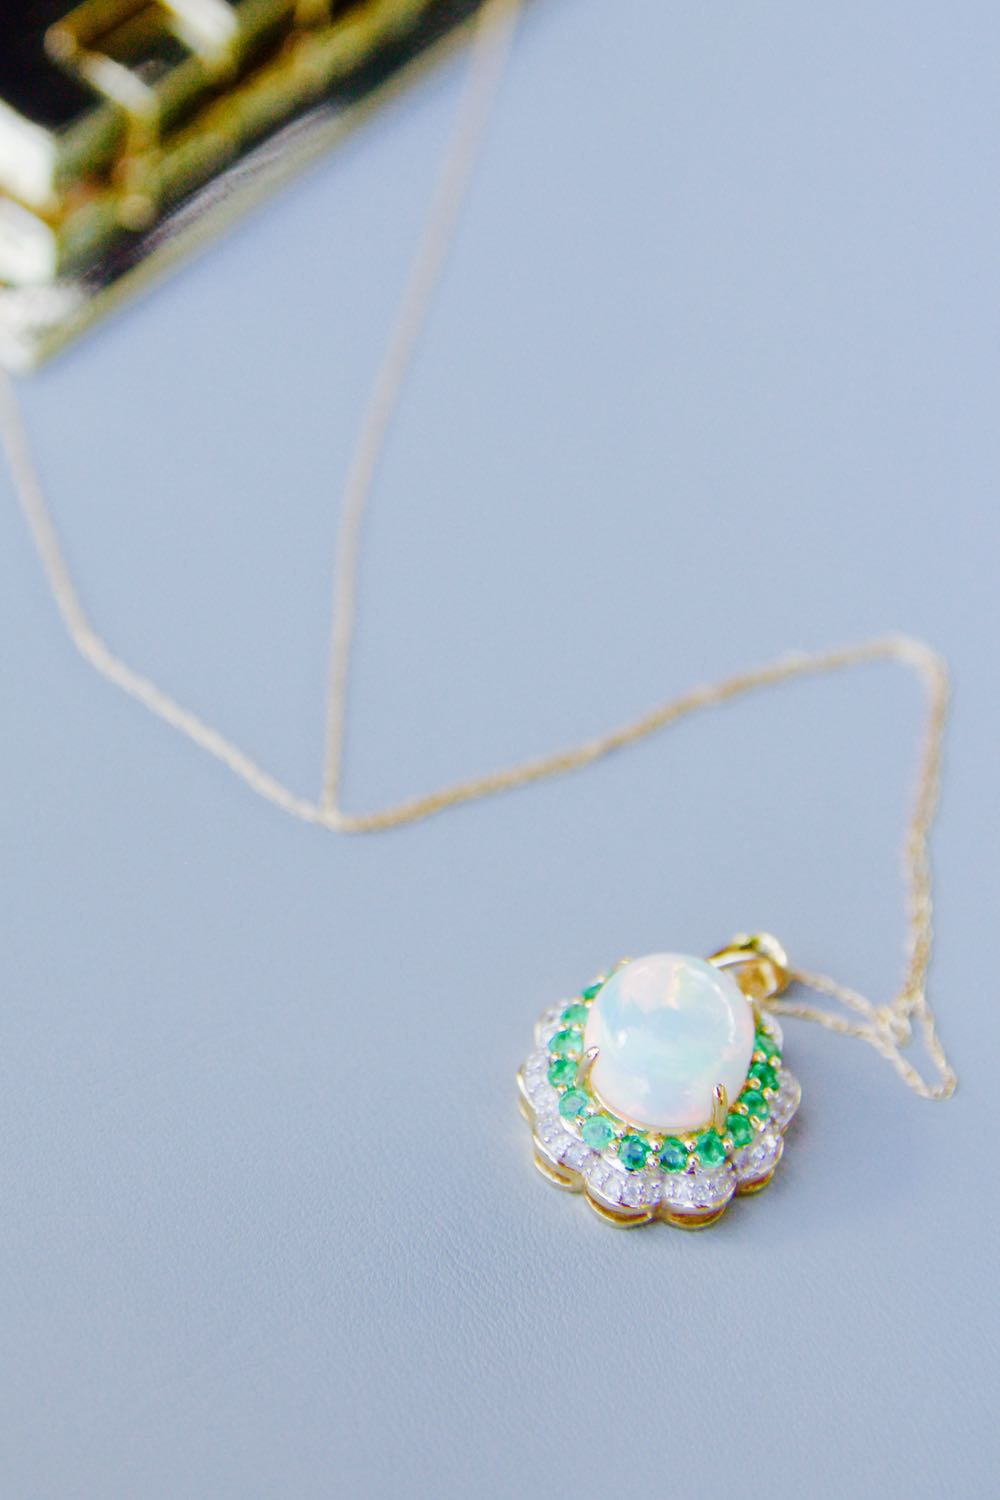 Opal necklace with diamonds and emeralds for a giveaway